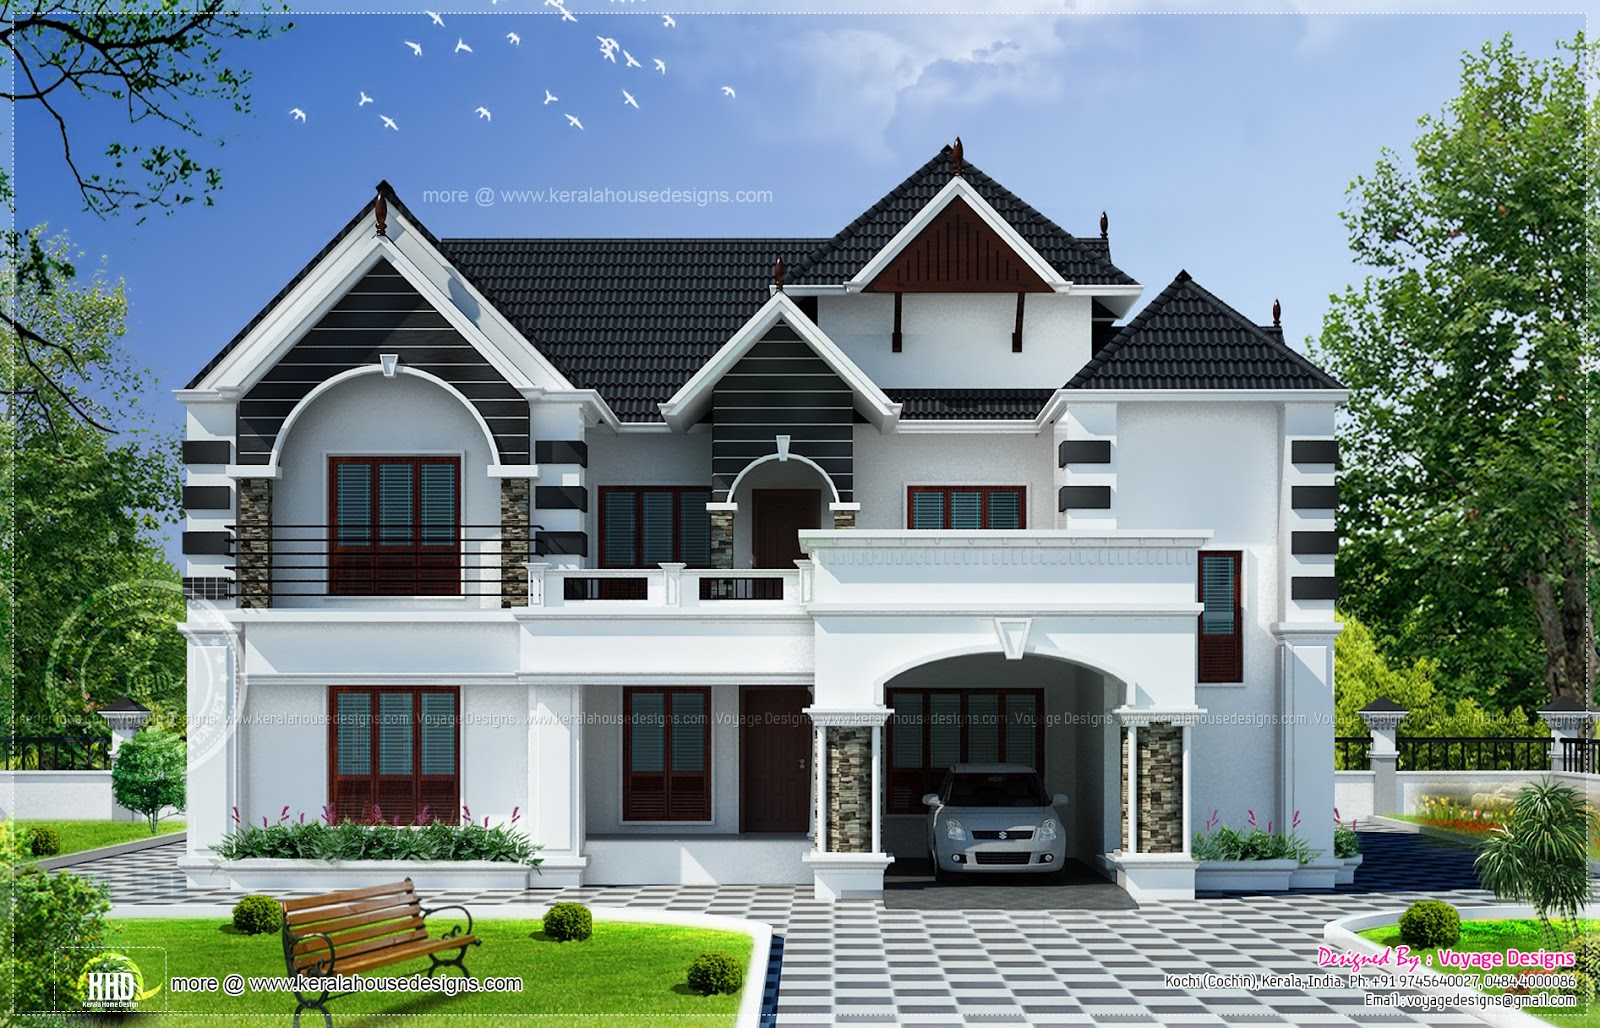 4 bedroom colonial style house kerala home design and for New american style house plans